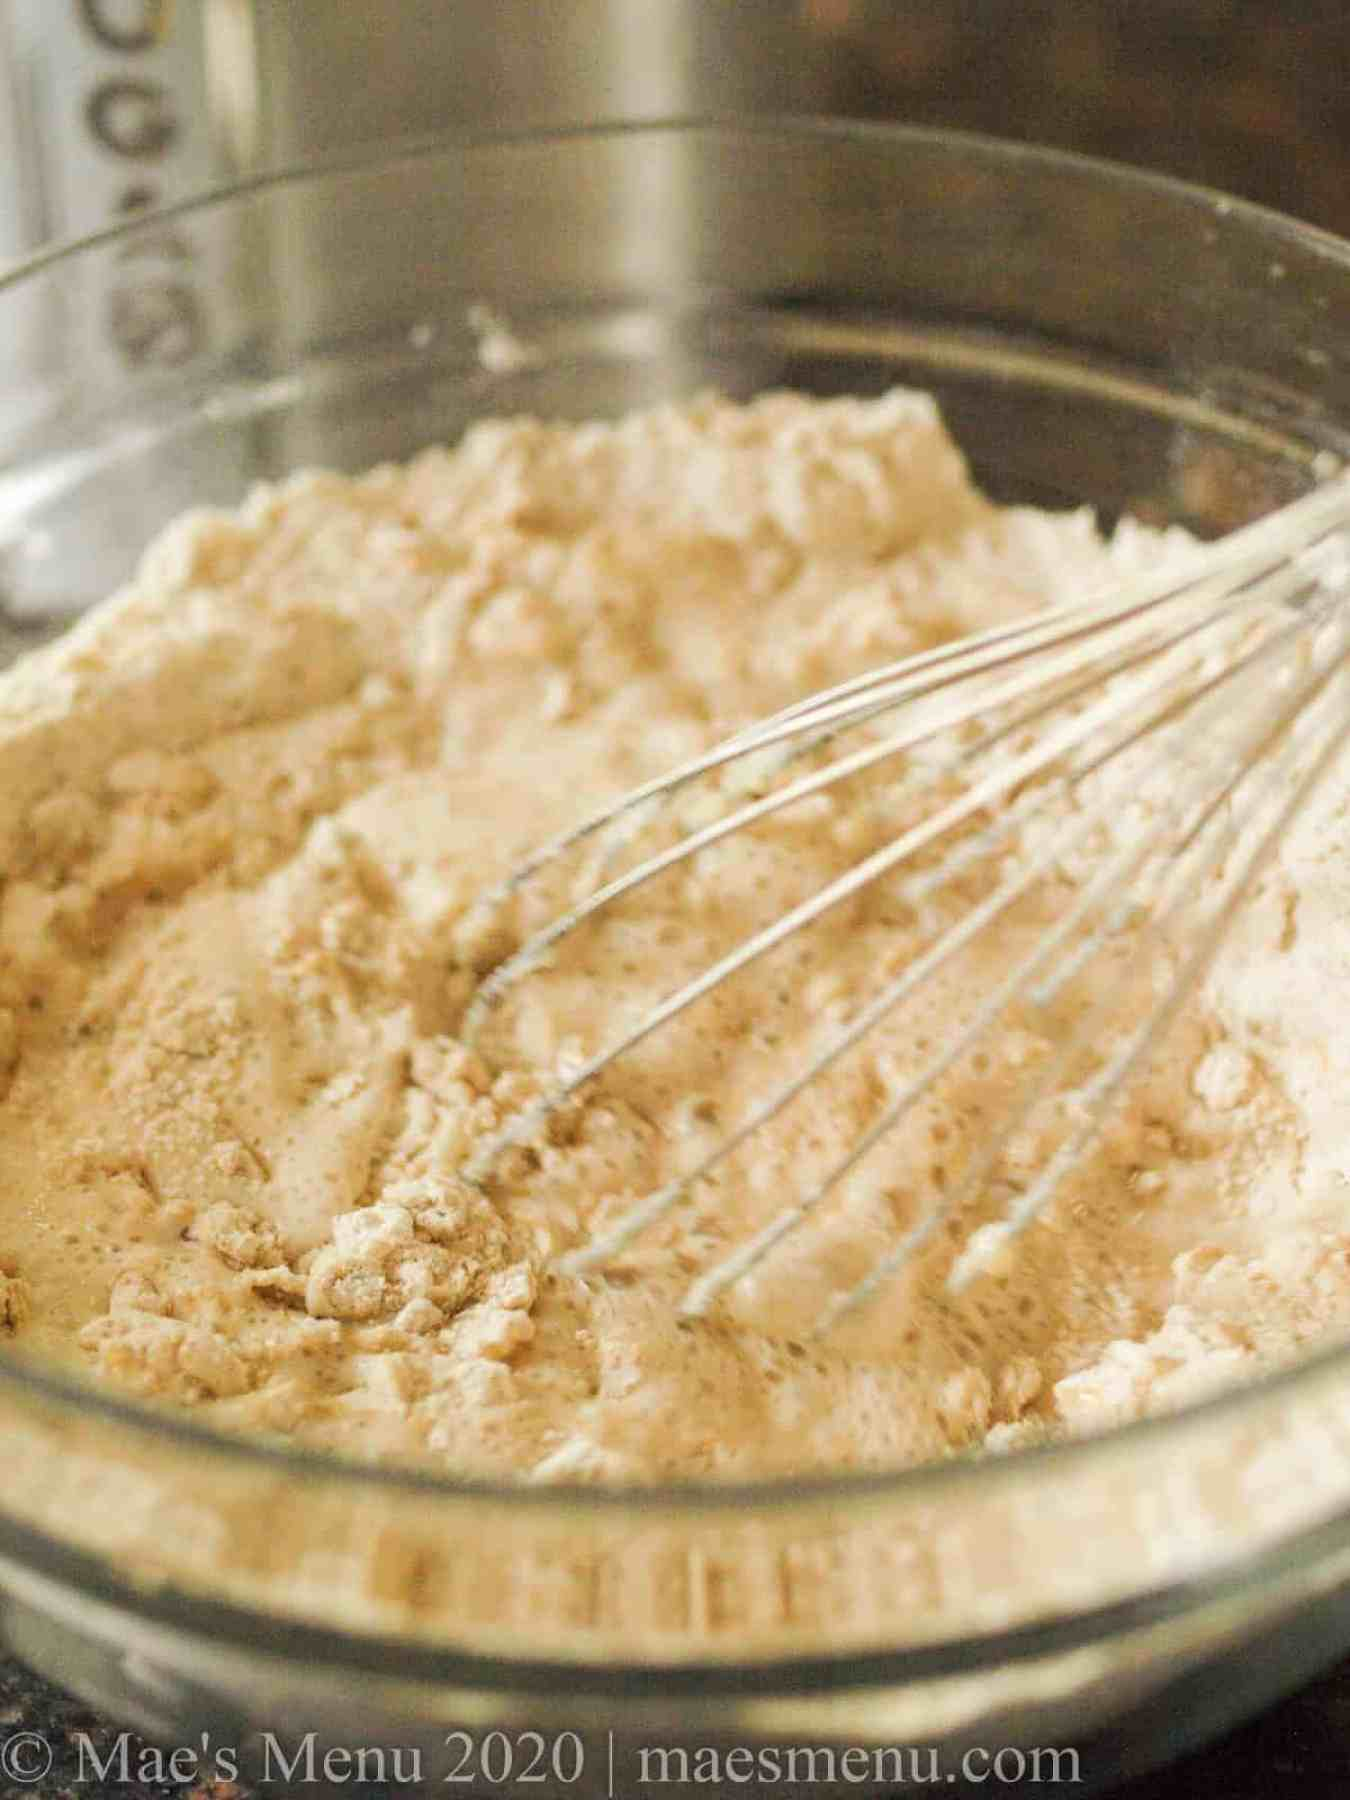 Mixing up the dough for quick oatmeal bread.